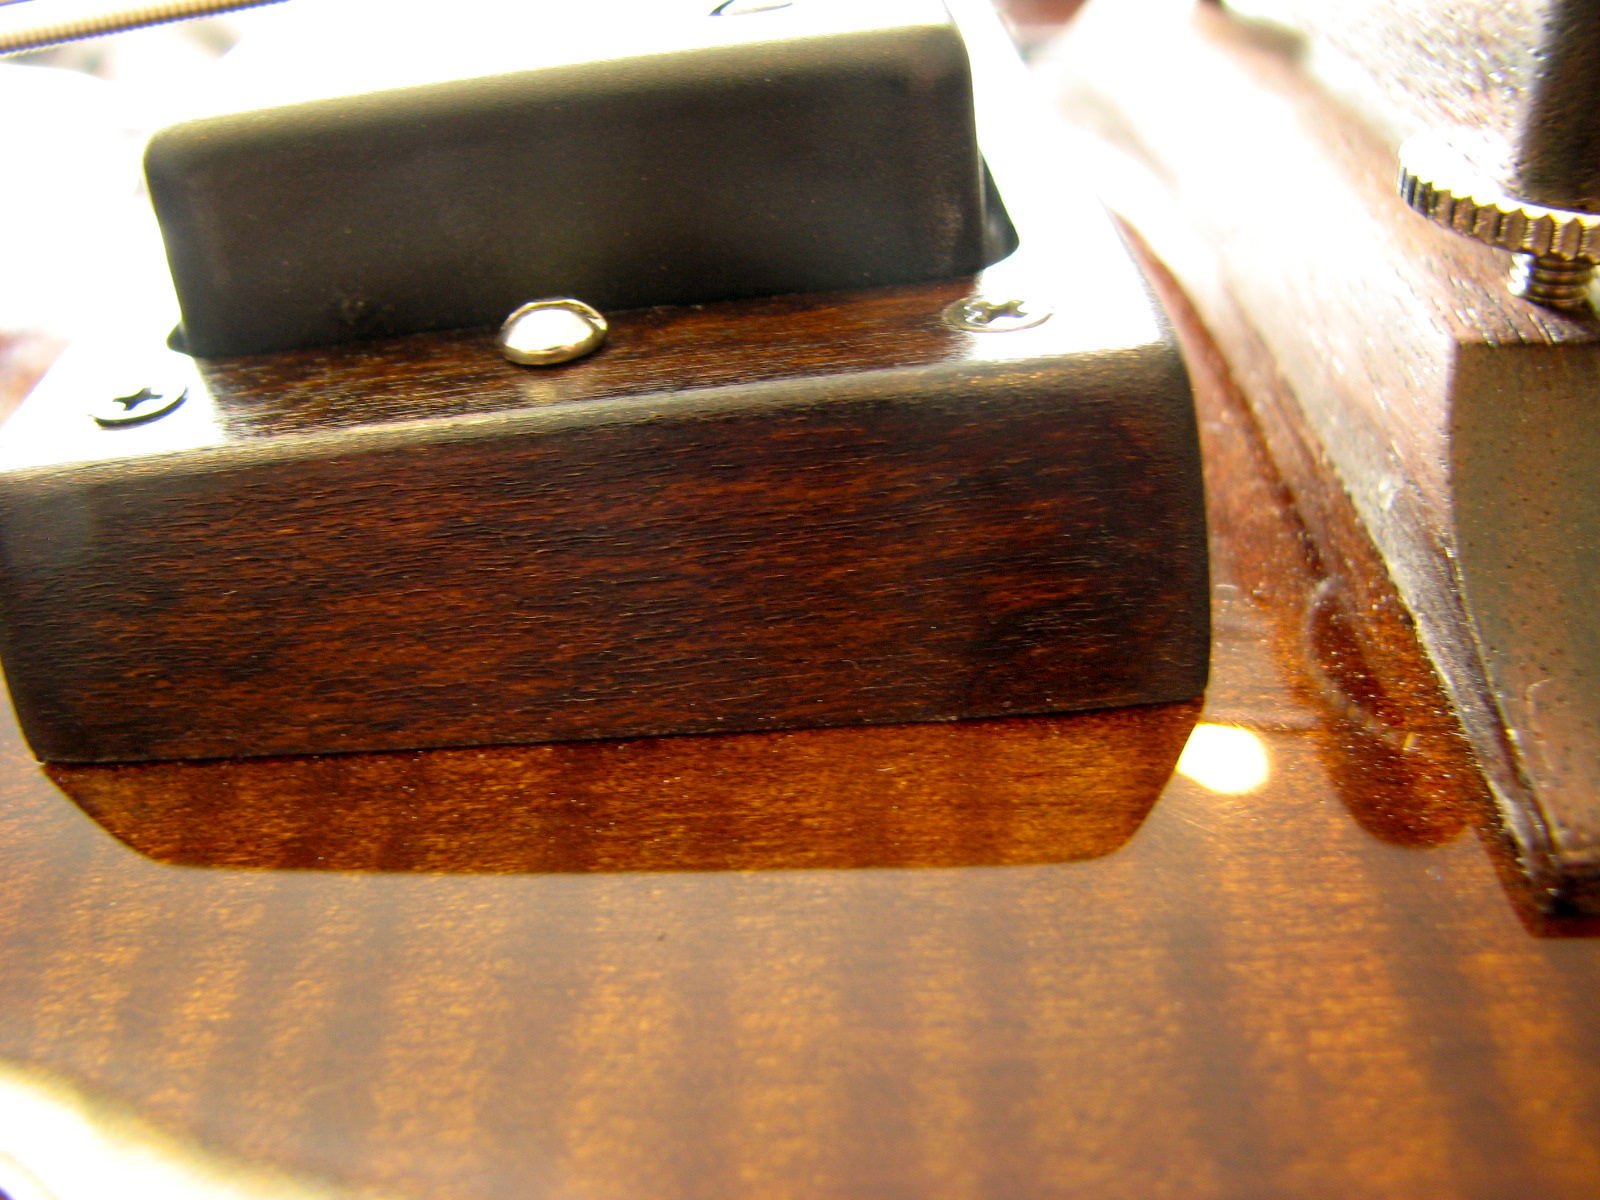 The pickup surrounds are handmade by CB